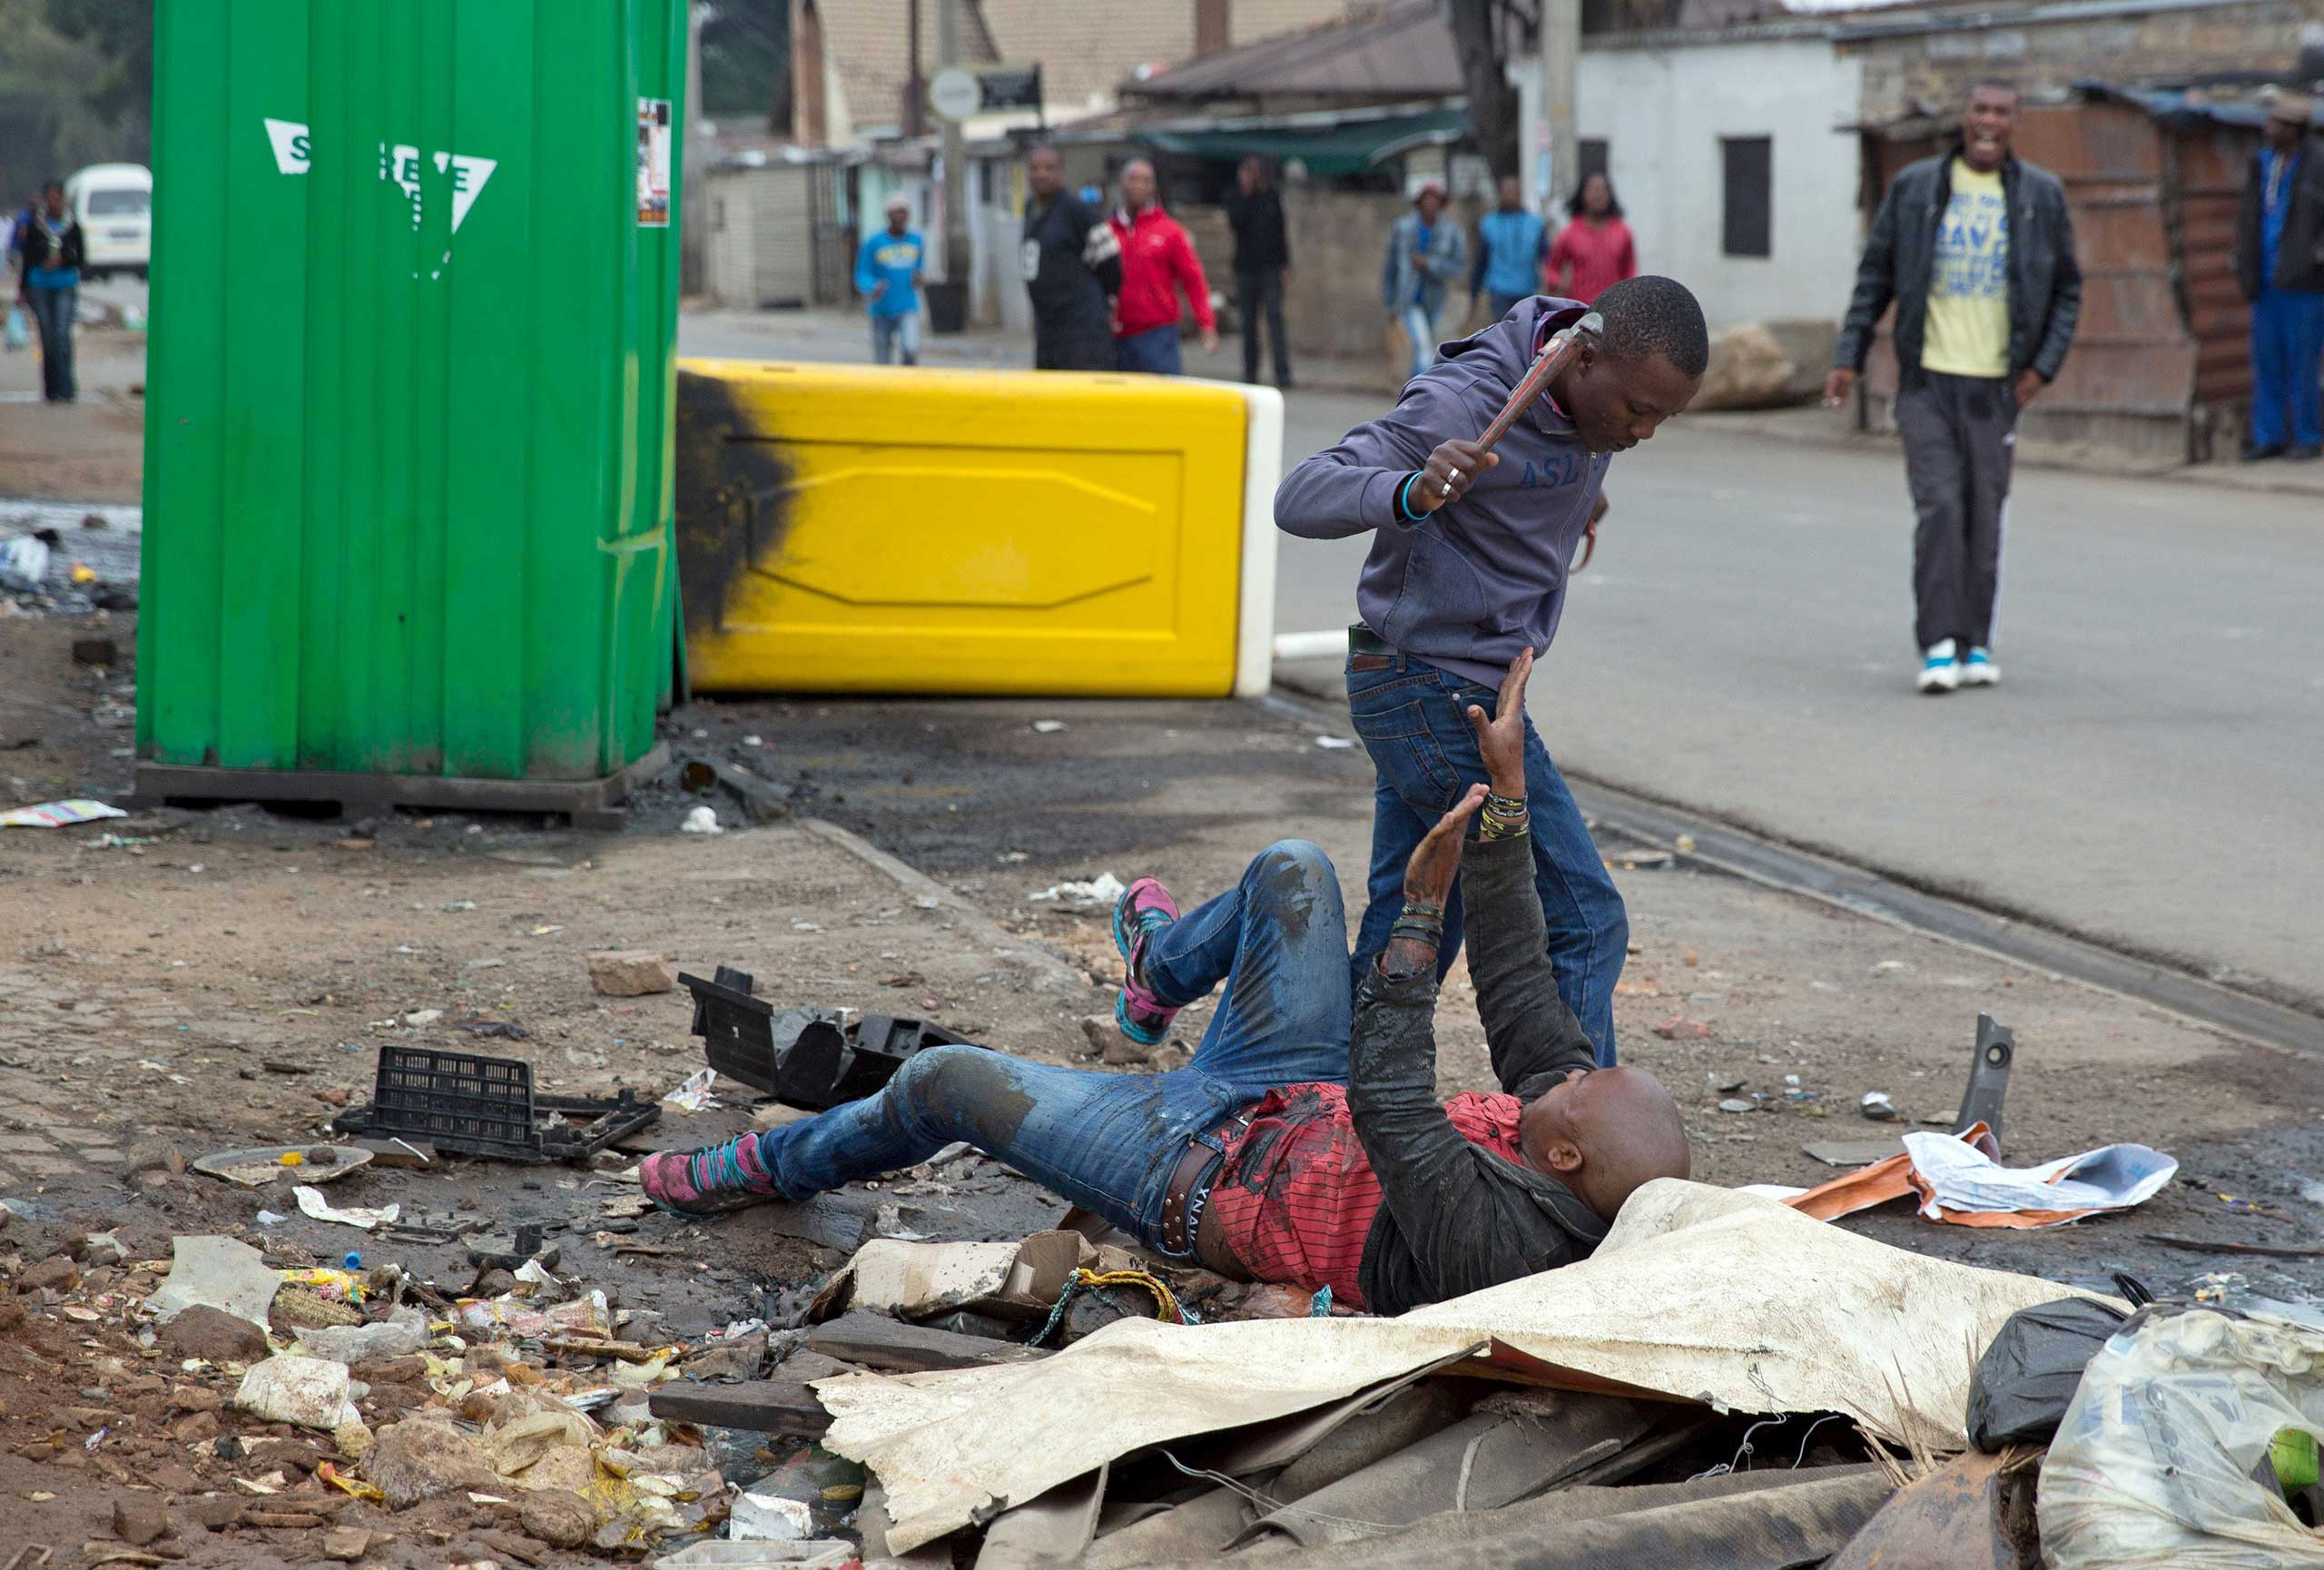 Sithole is attacked by men in Alexandra township during anti-immigrant violence in Johannesburg on April 18, 2015.